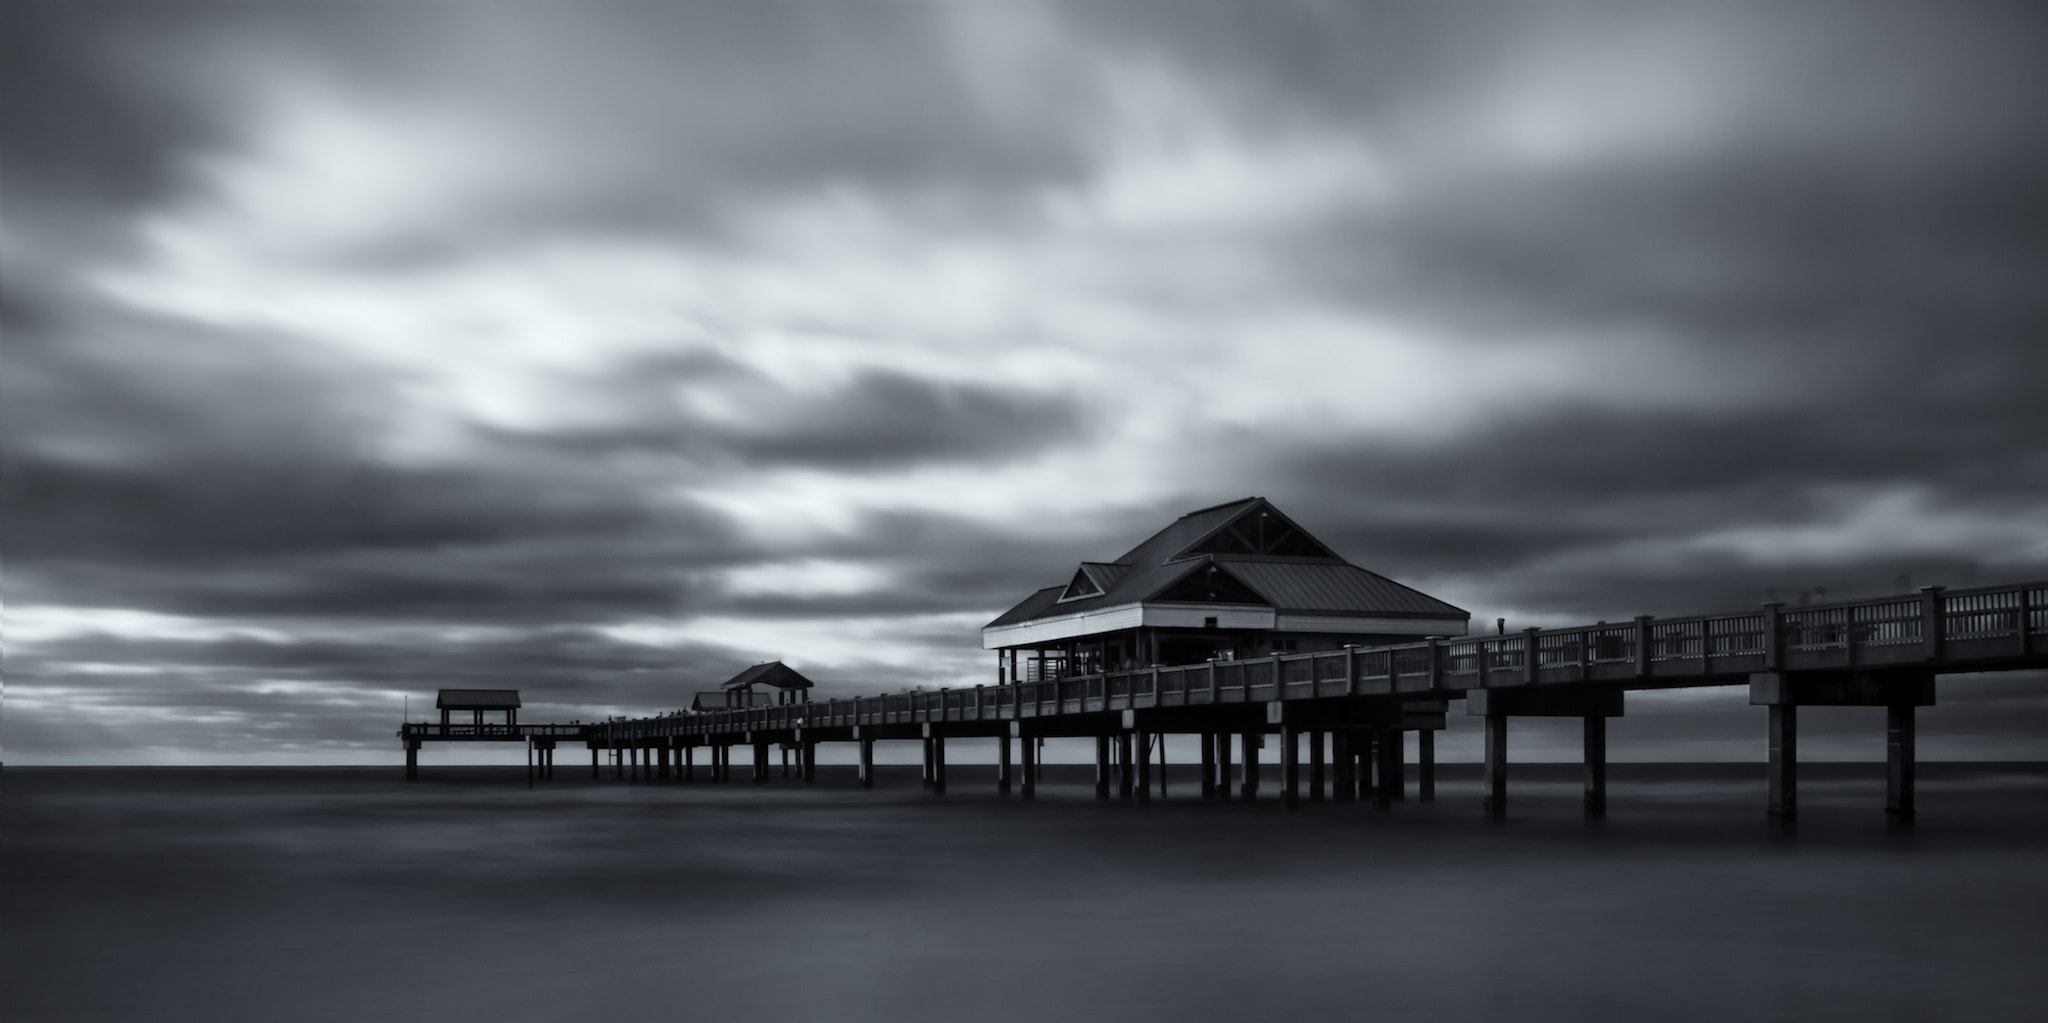 Photograph Pier 60 by Andrew Vernon on 500px